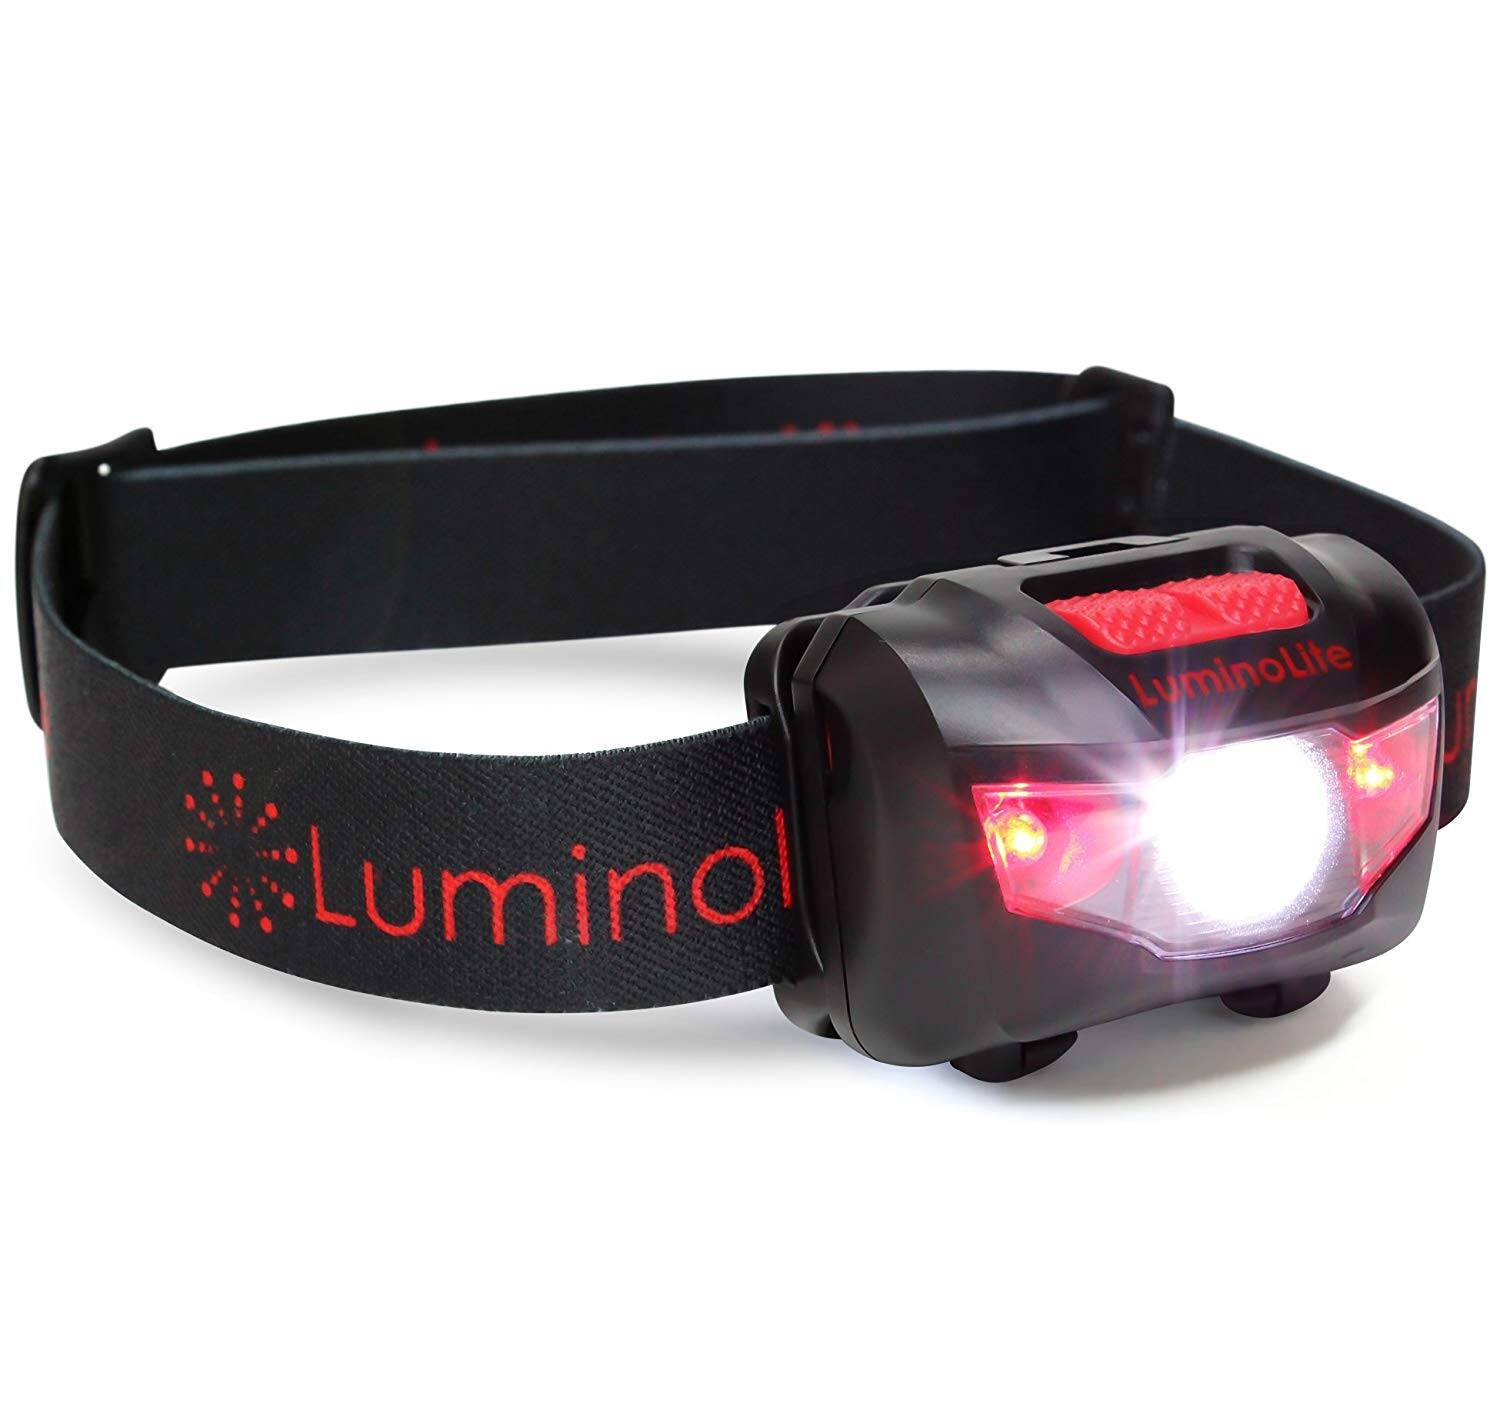 Ultra Bright CREE LED Headlamp - 160 Lumens